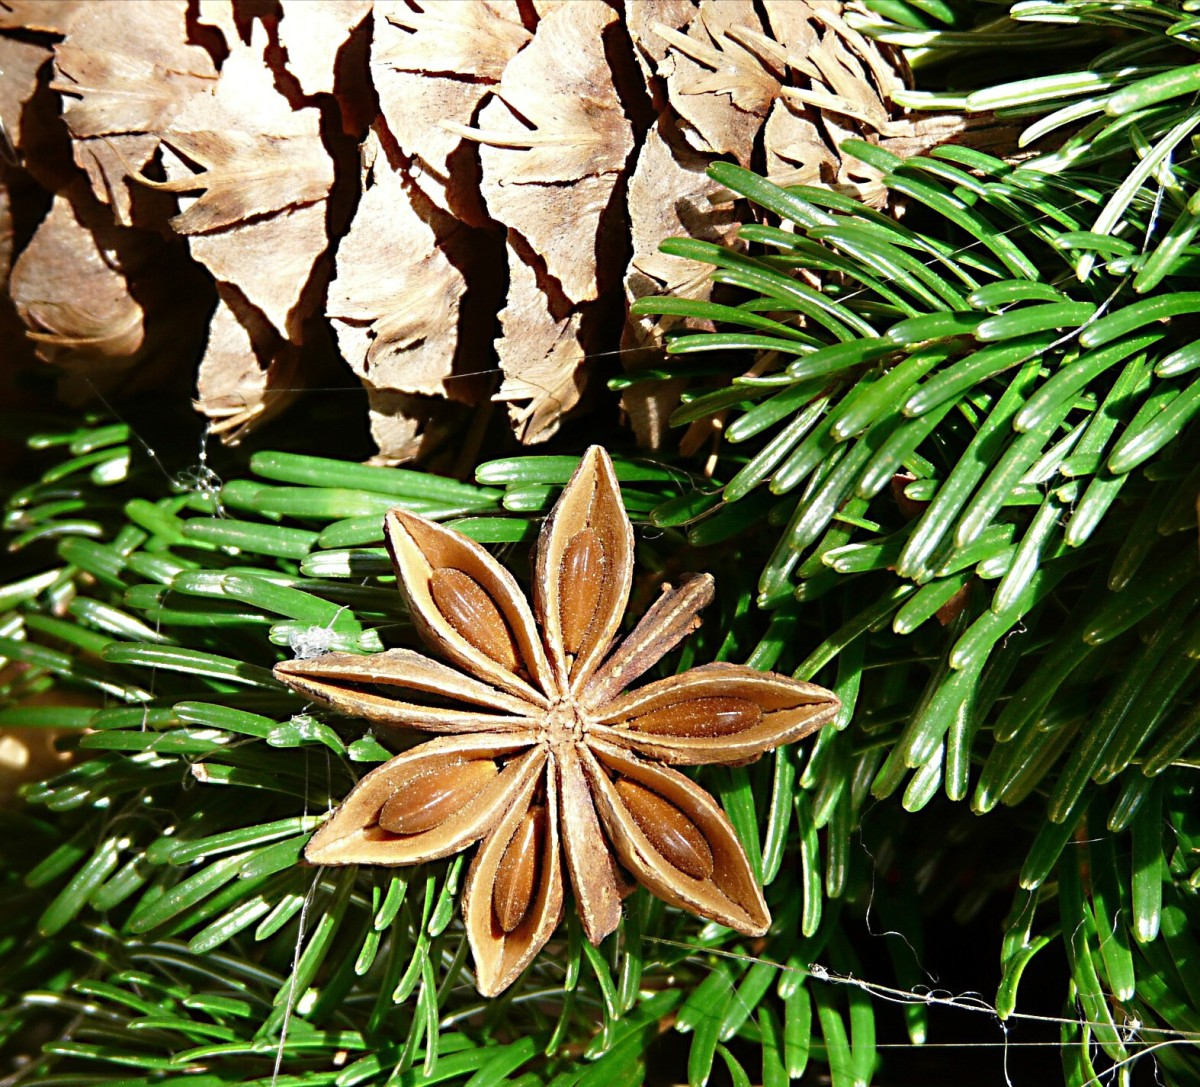 Star Anise: A Tasty and Versatile Spice With a Licorice Flavor